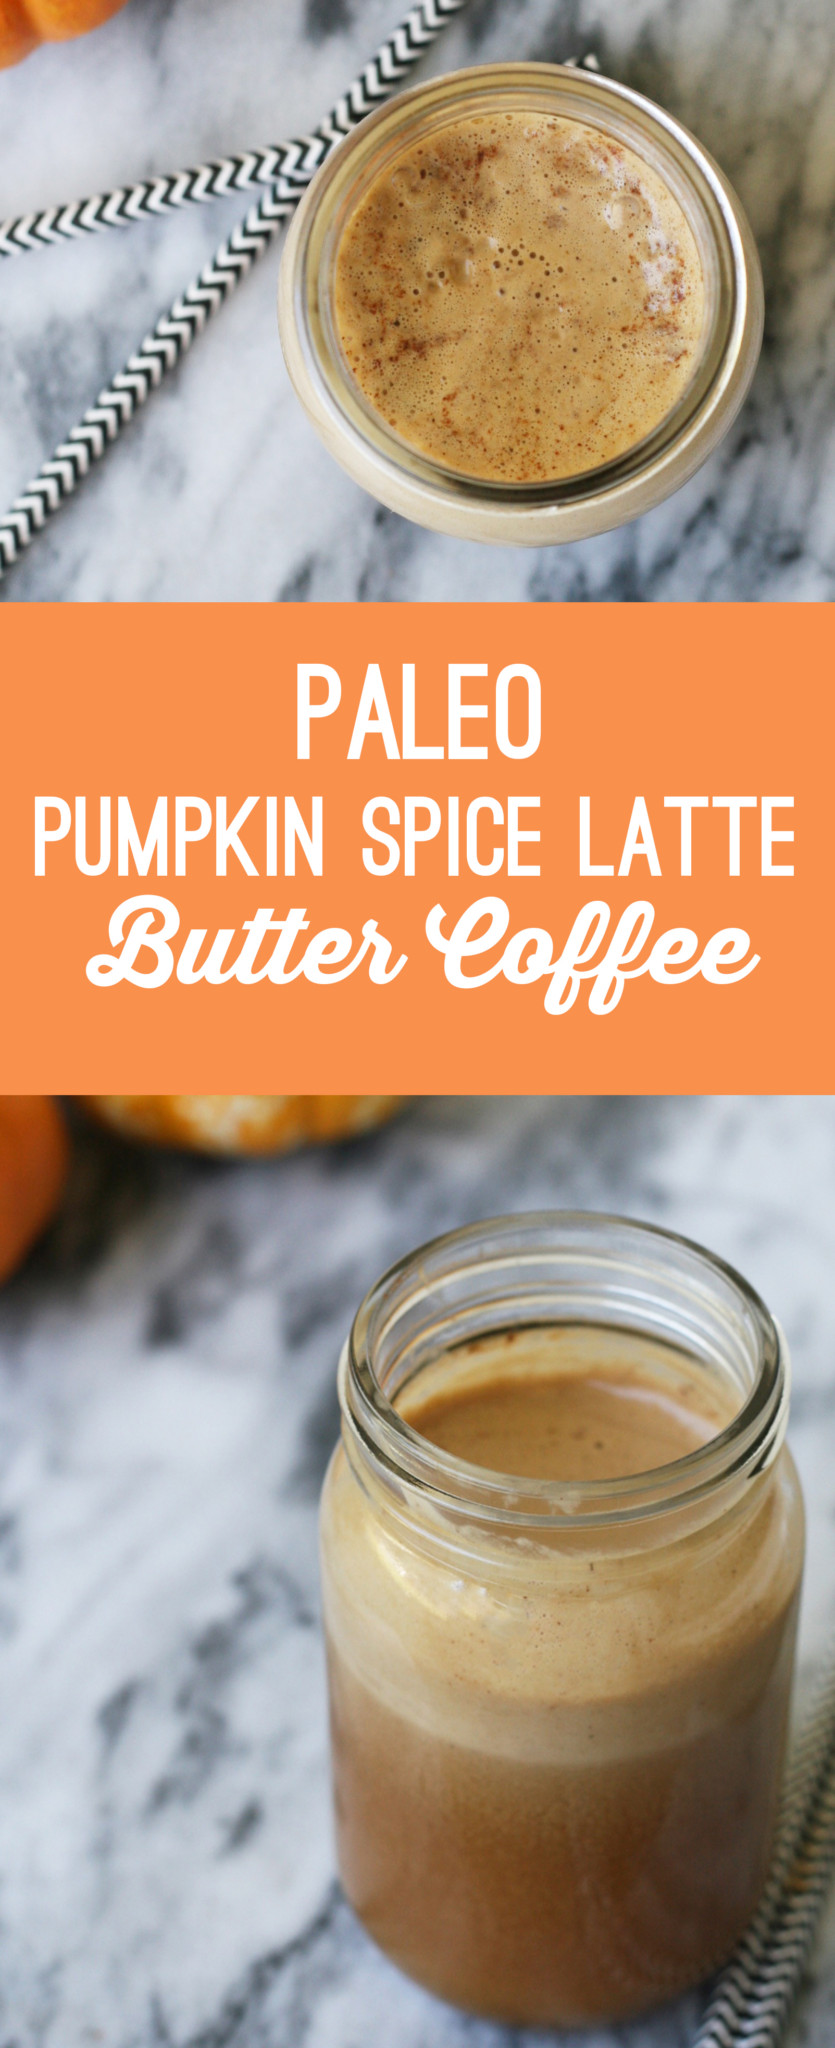 Paleo Pumpkin Spice Latte Butter Coffee